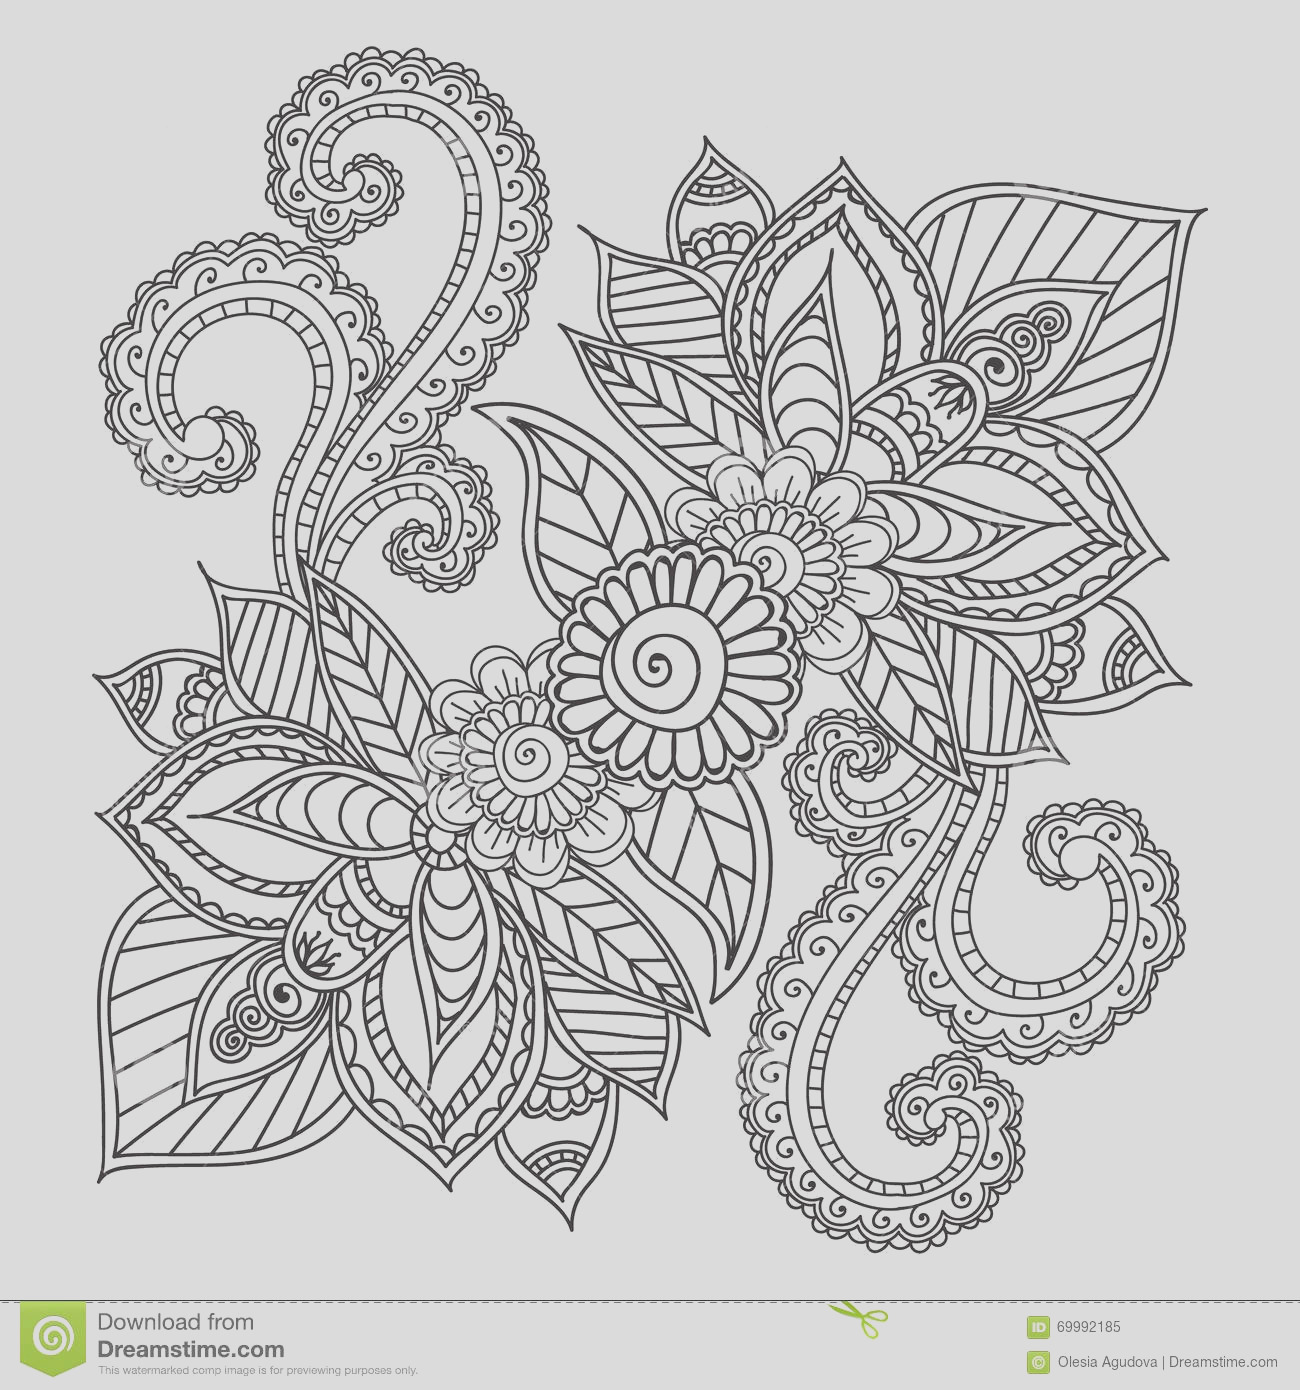 stock illustration coloring pages adults henna mehndi doodles abstract floral elements paisley design mandala vector illustration book image